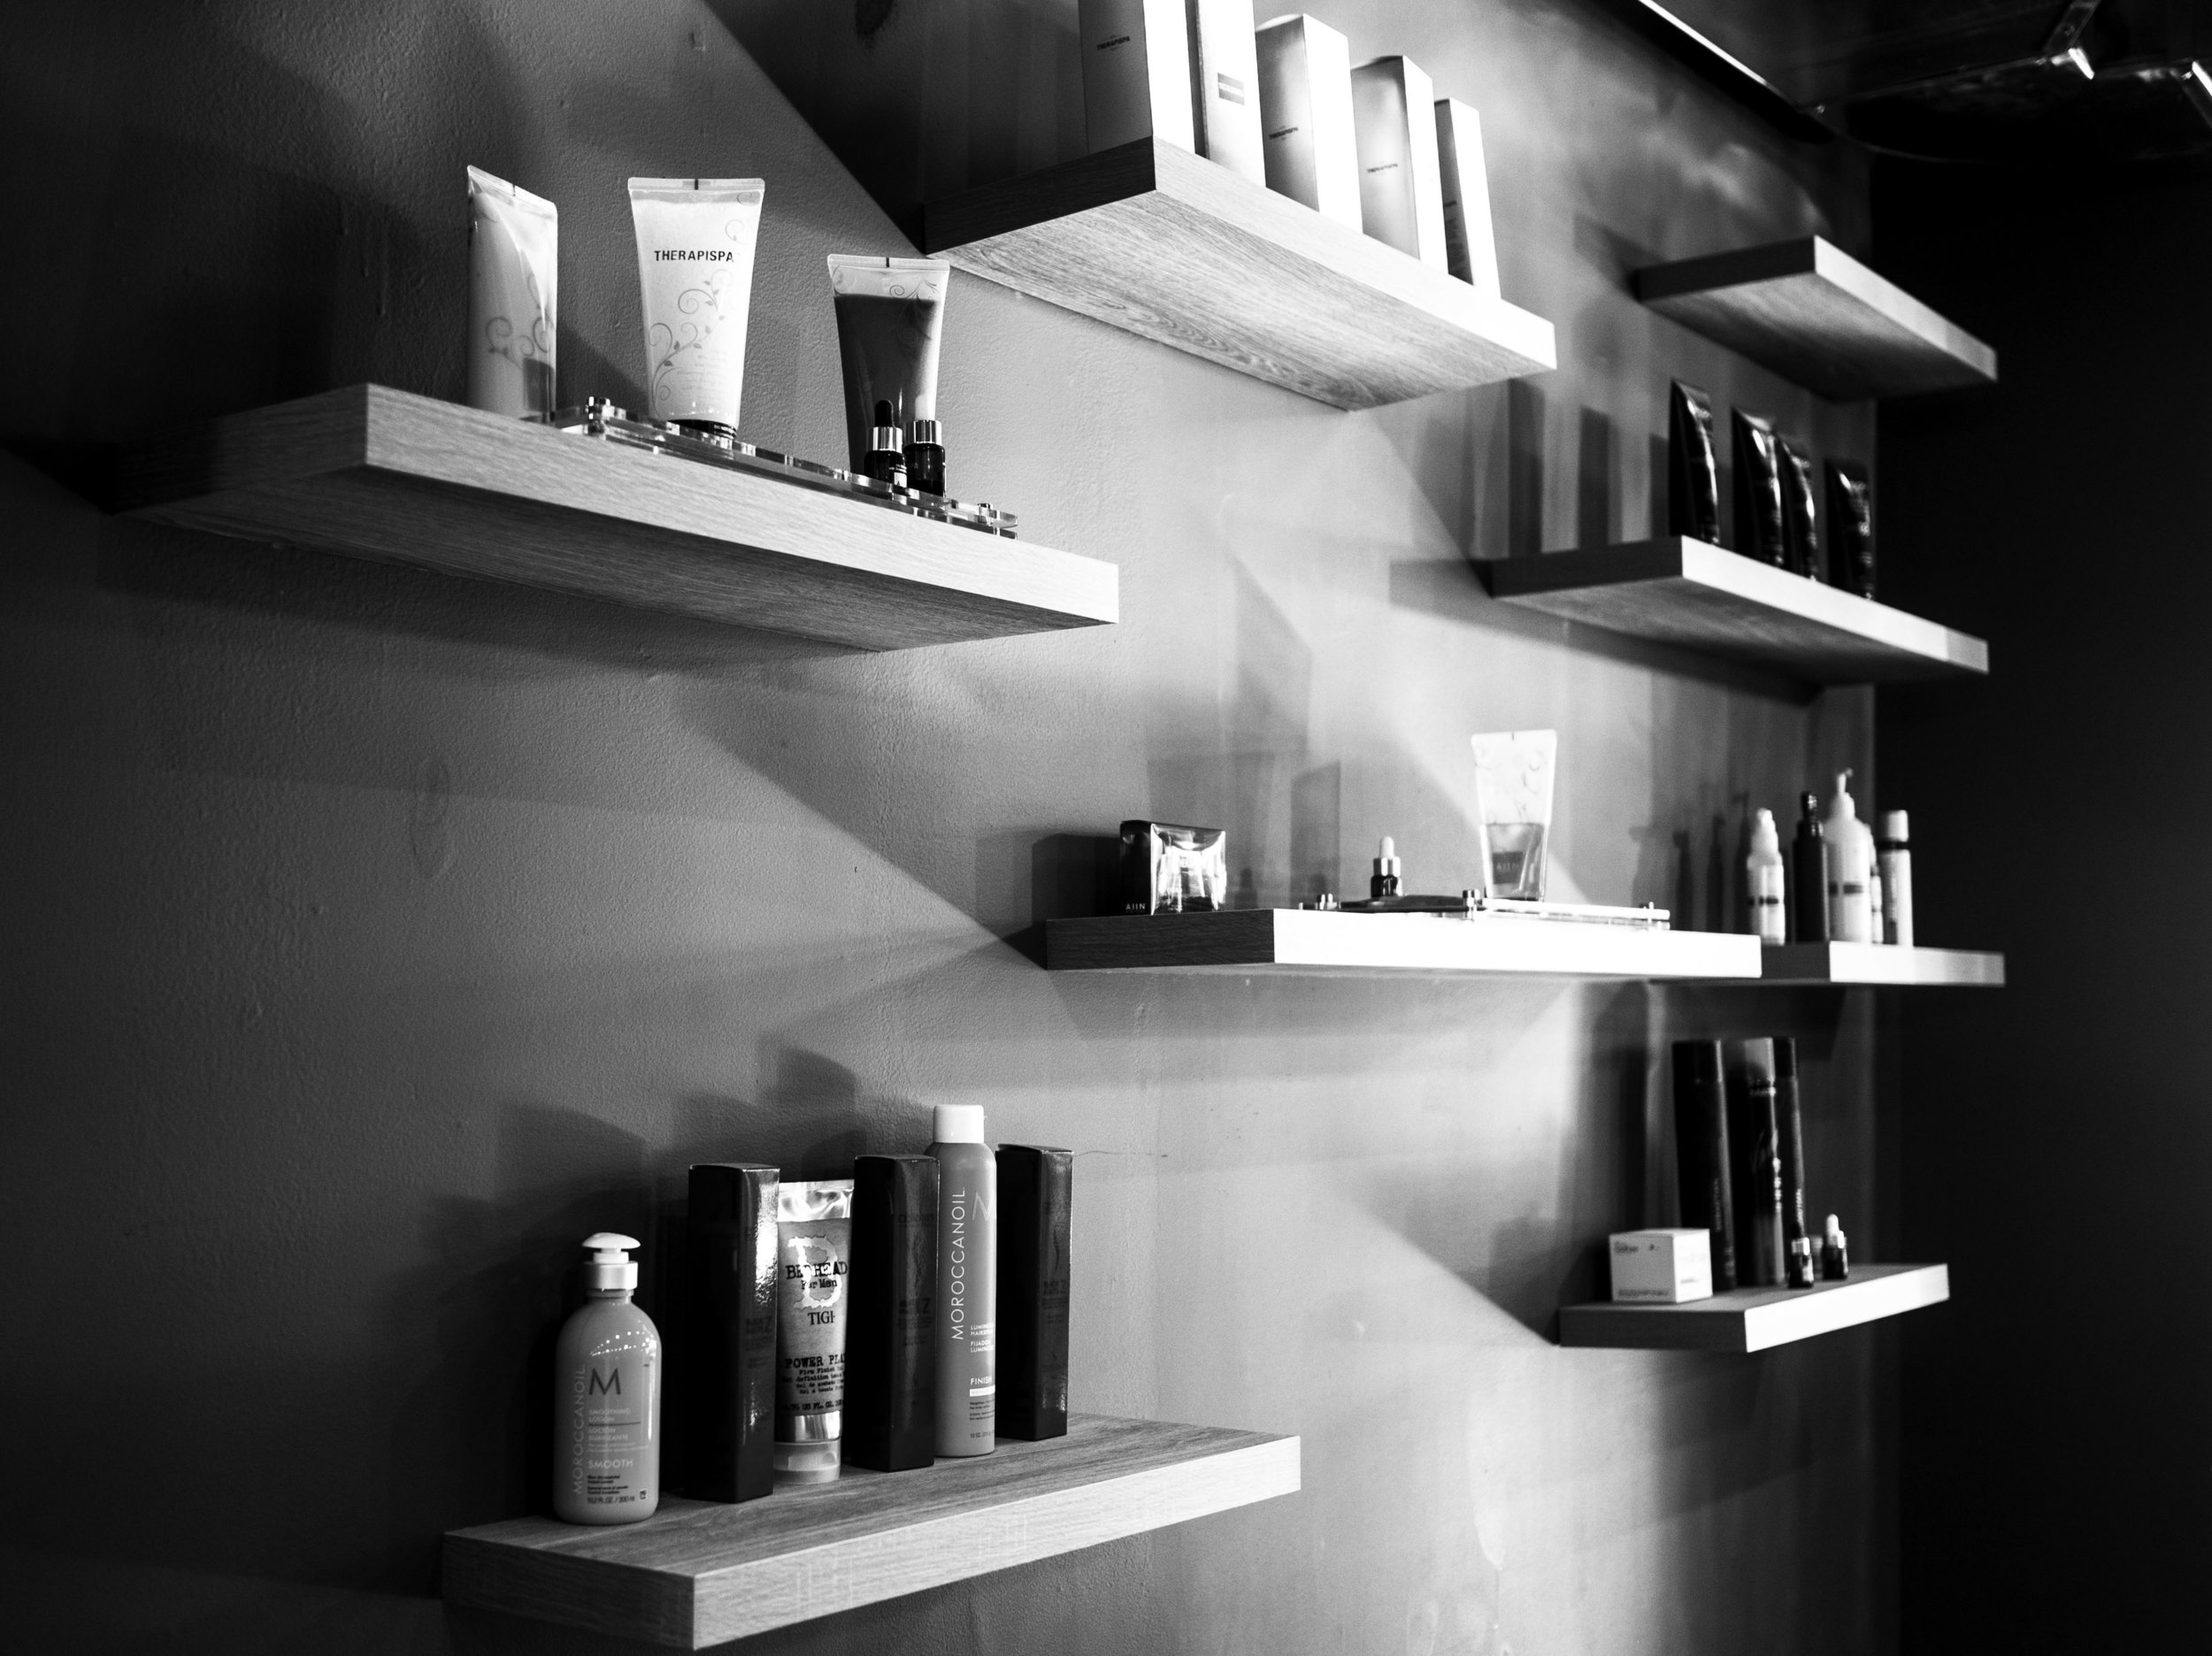 products_wall_01.jpg